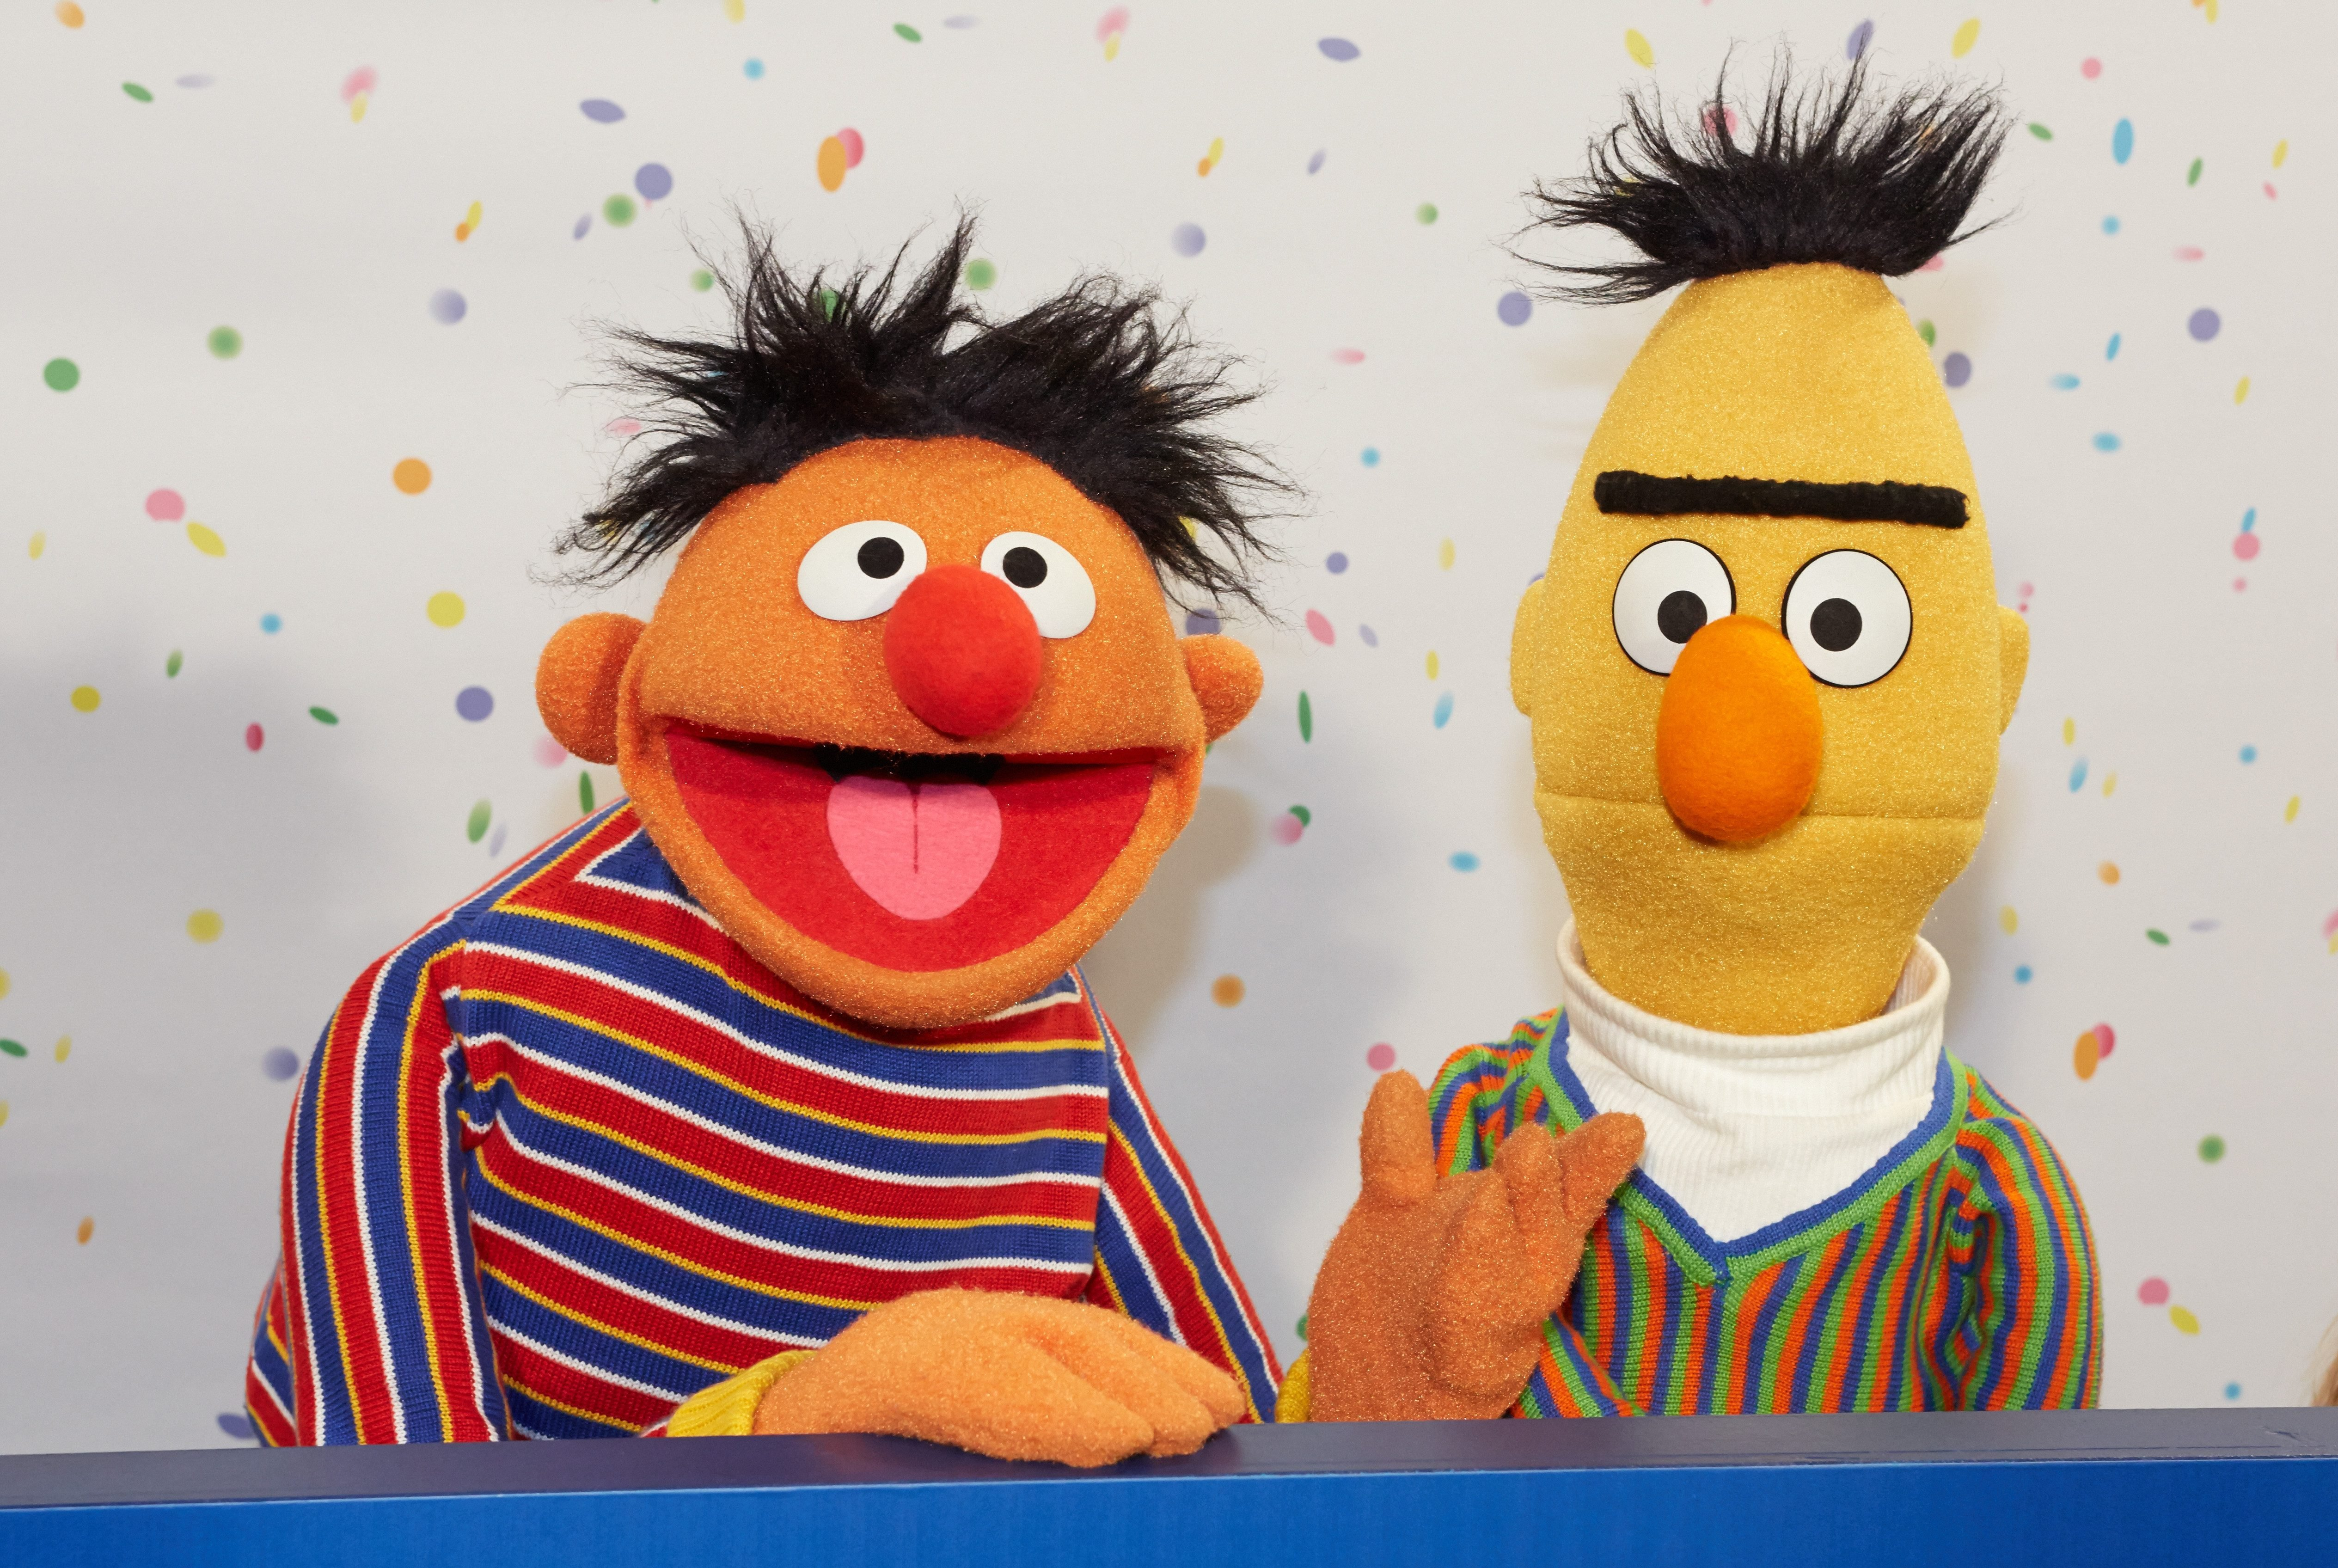 Mandatory Credit: Photo by Georg Wendt/EPA/Shutterstock (8228646a) Sesame Street Muppets Ernie and Bert Pose For Photographs During a Press Conference on the 40th Anniversary of the Sesame Street in Hamburg Germany 07 January 2013 on 08 January 1973 the Children's Television Series Sesame Street Premiered in Germany Germany Hamburg Germany Television - Jan 2013